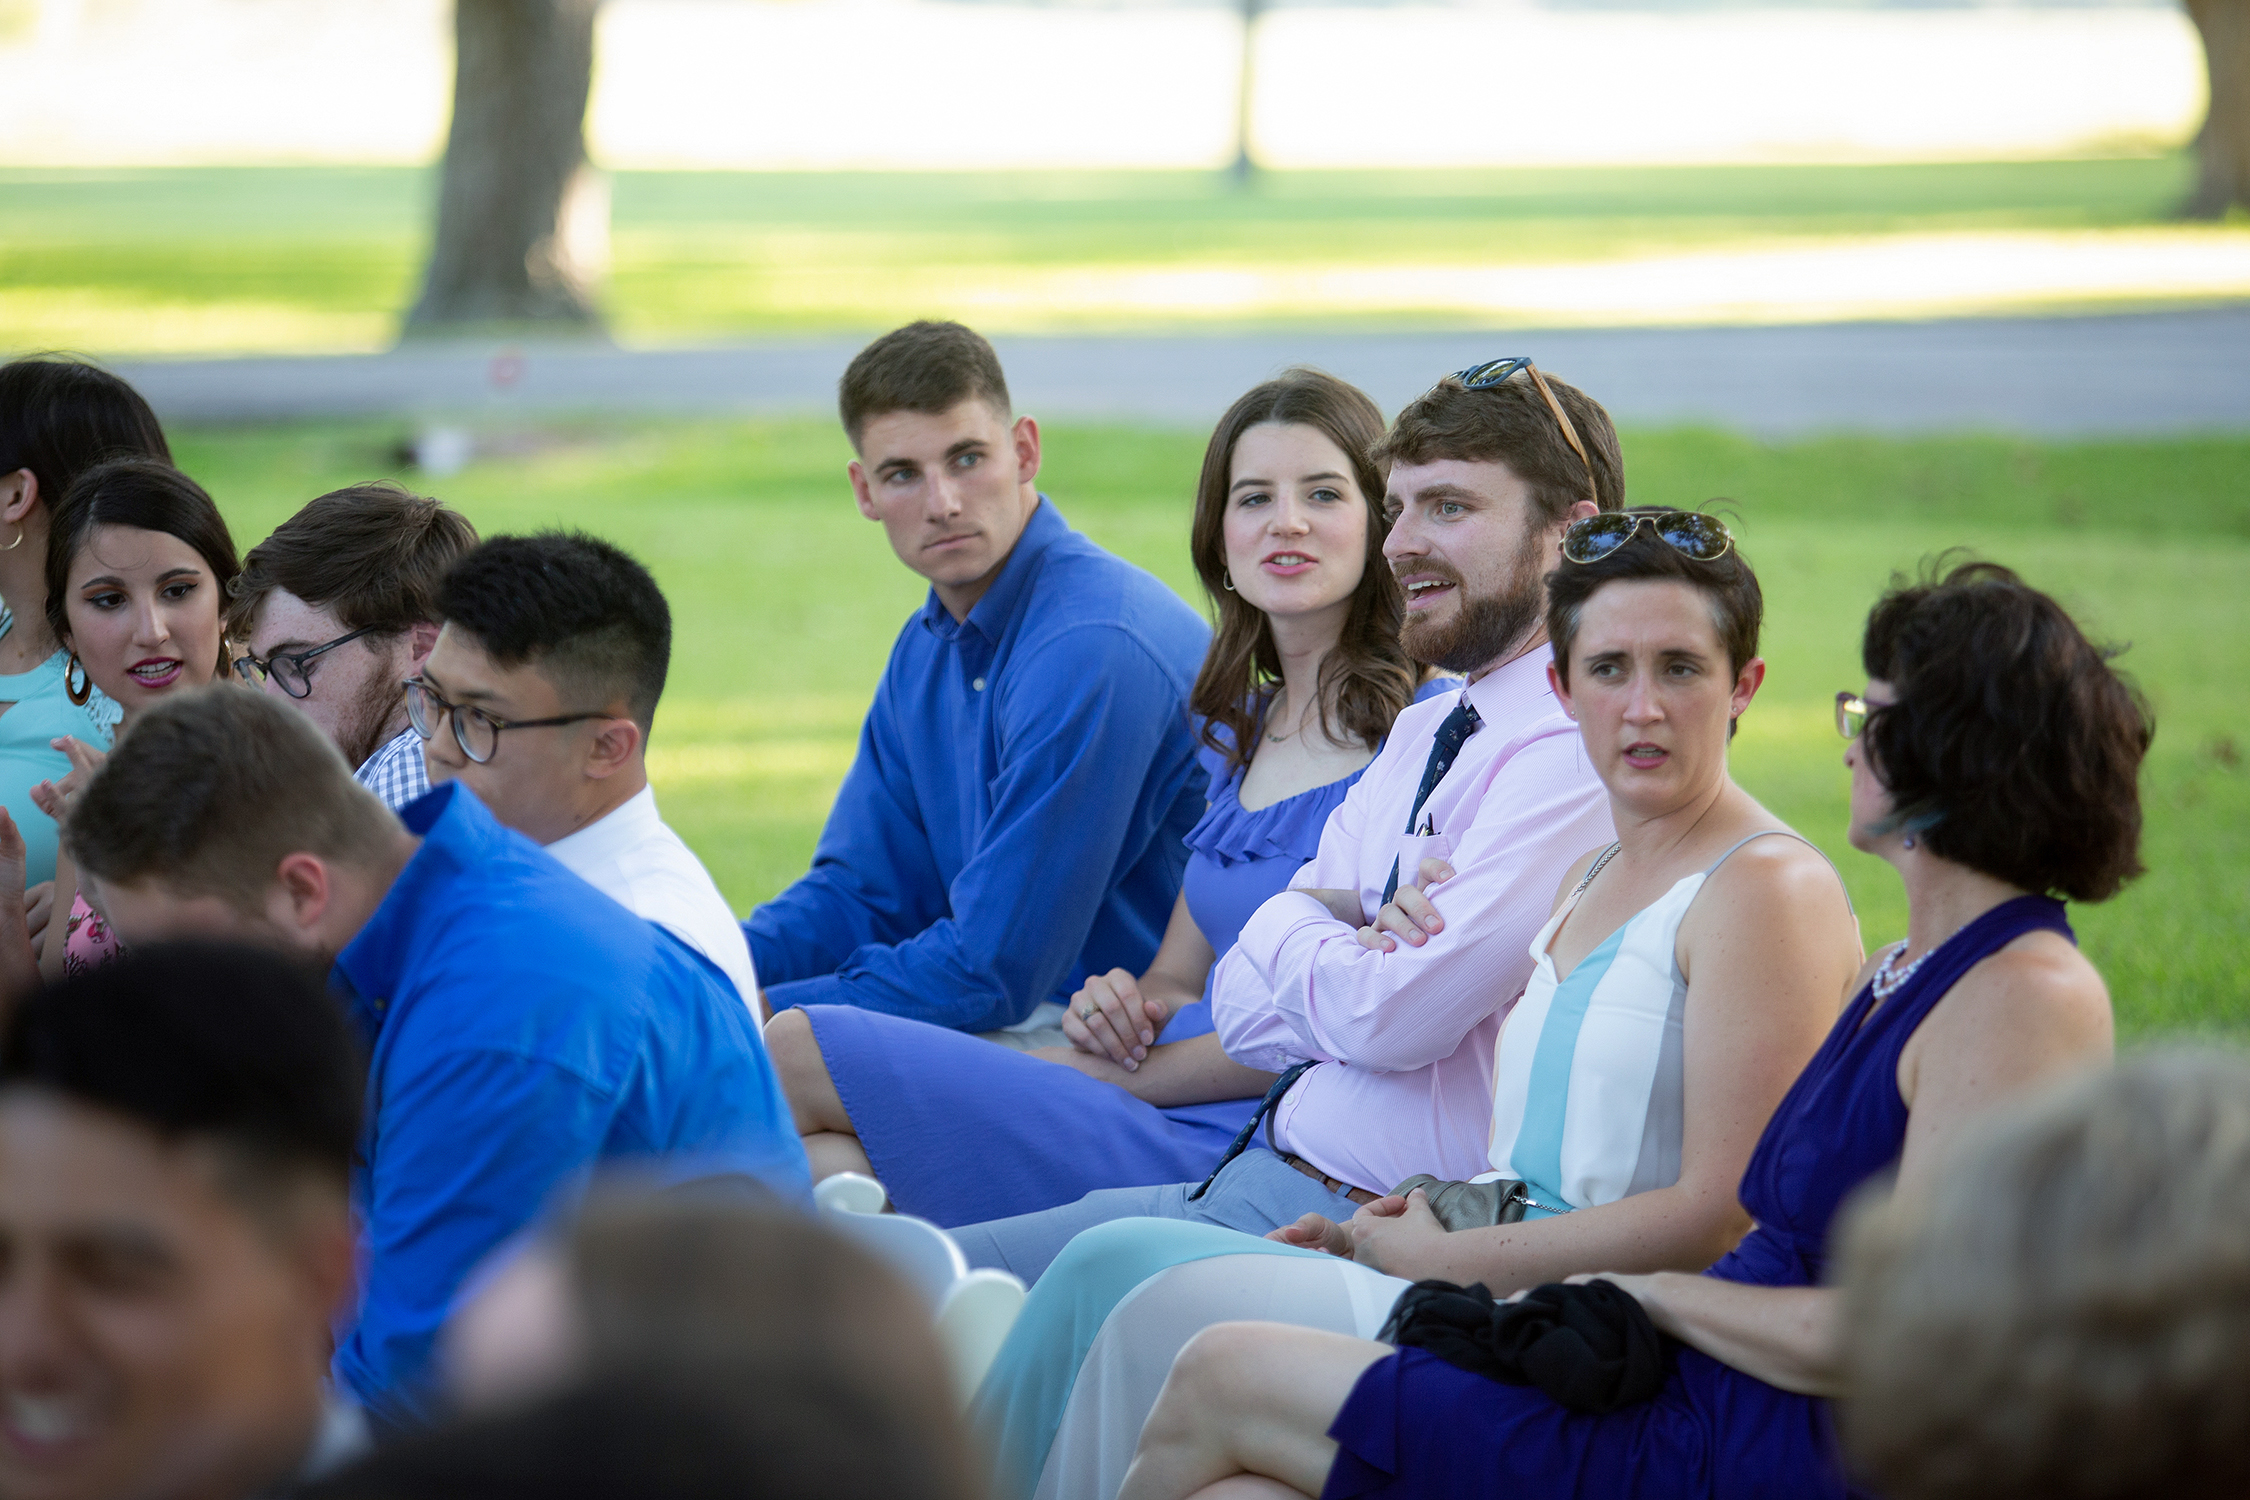 Guests at the August 17, 2019, wedding between May 2019 Texas A&M chemistry graduates Julia Santell and Josiah Day